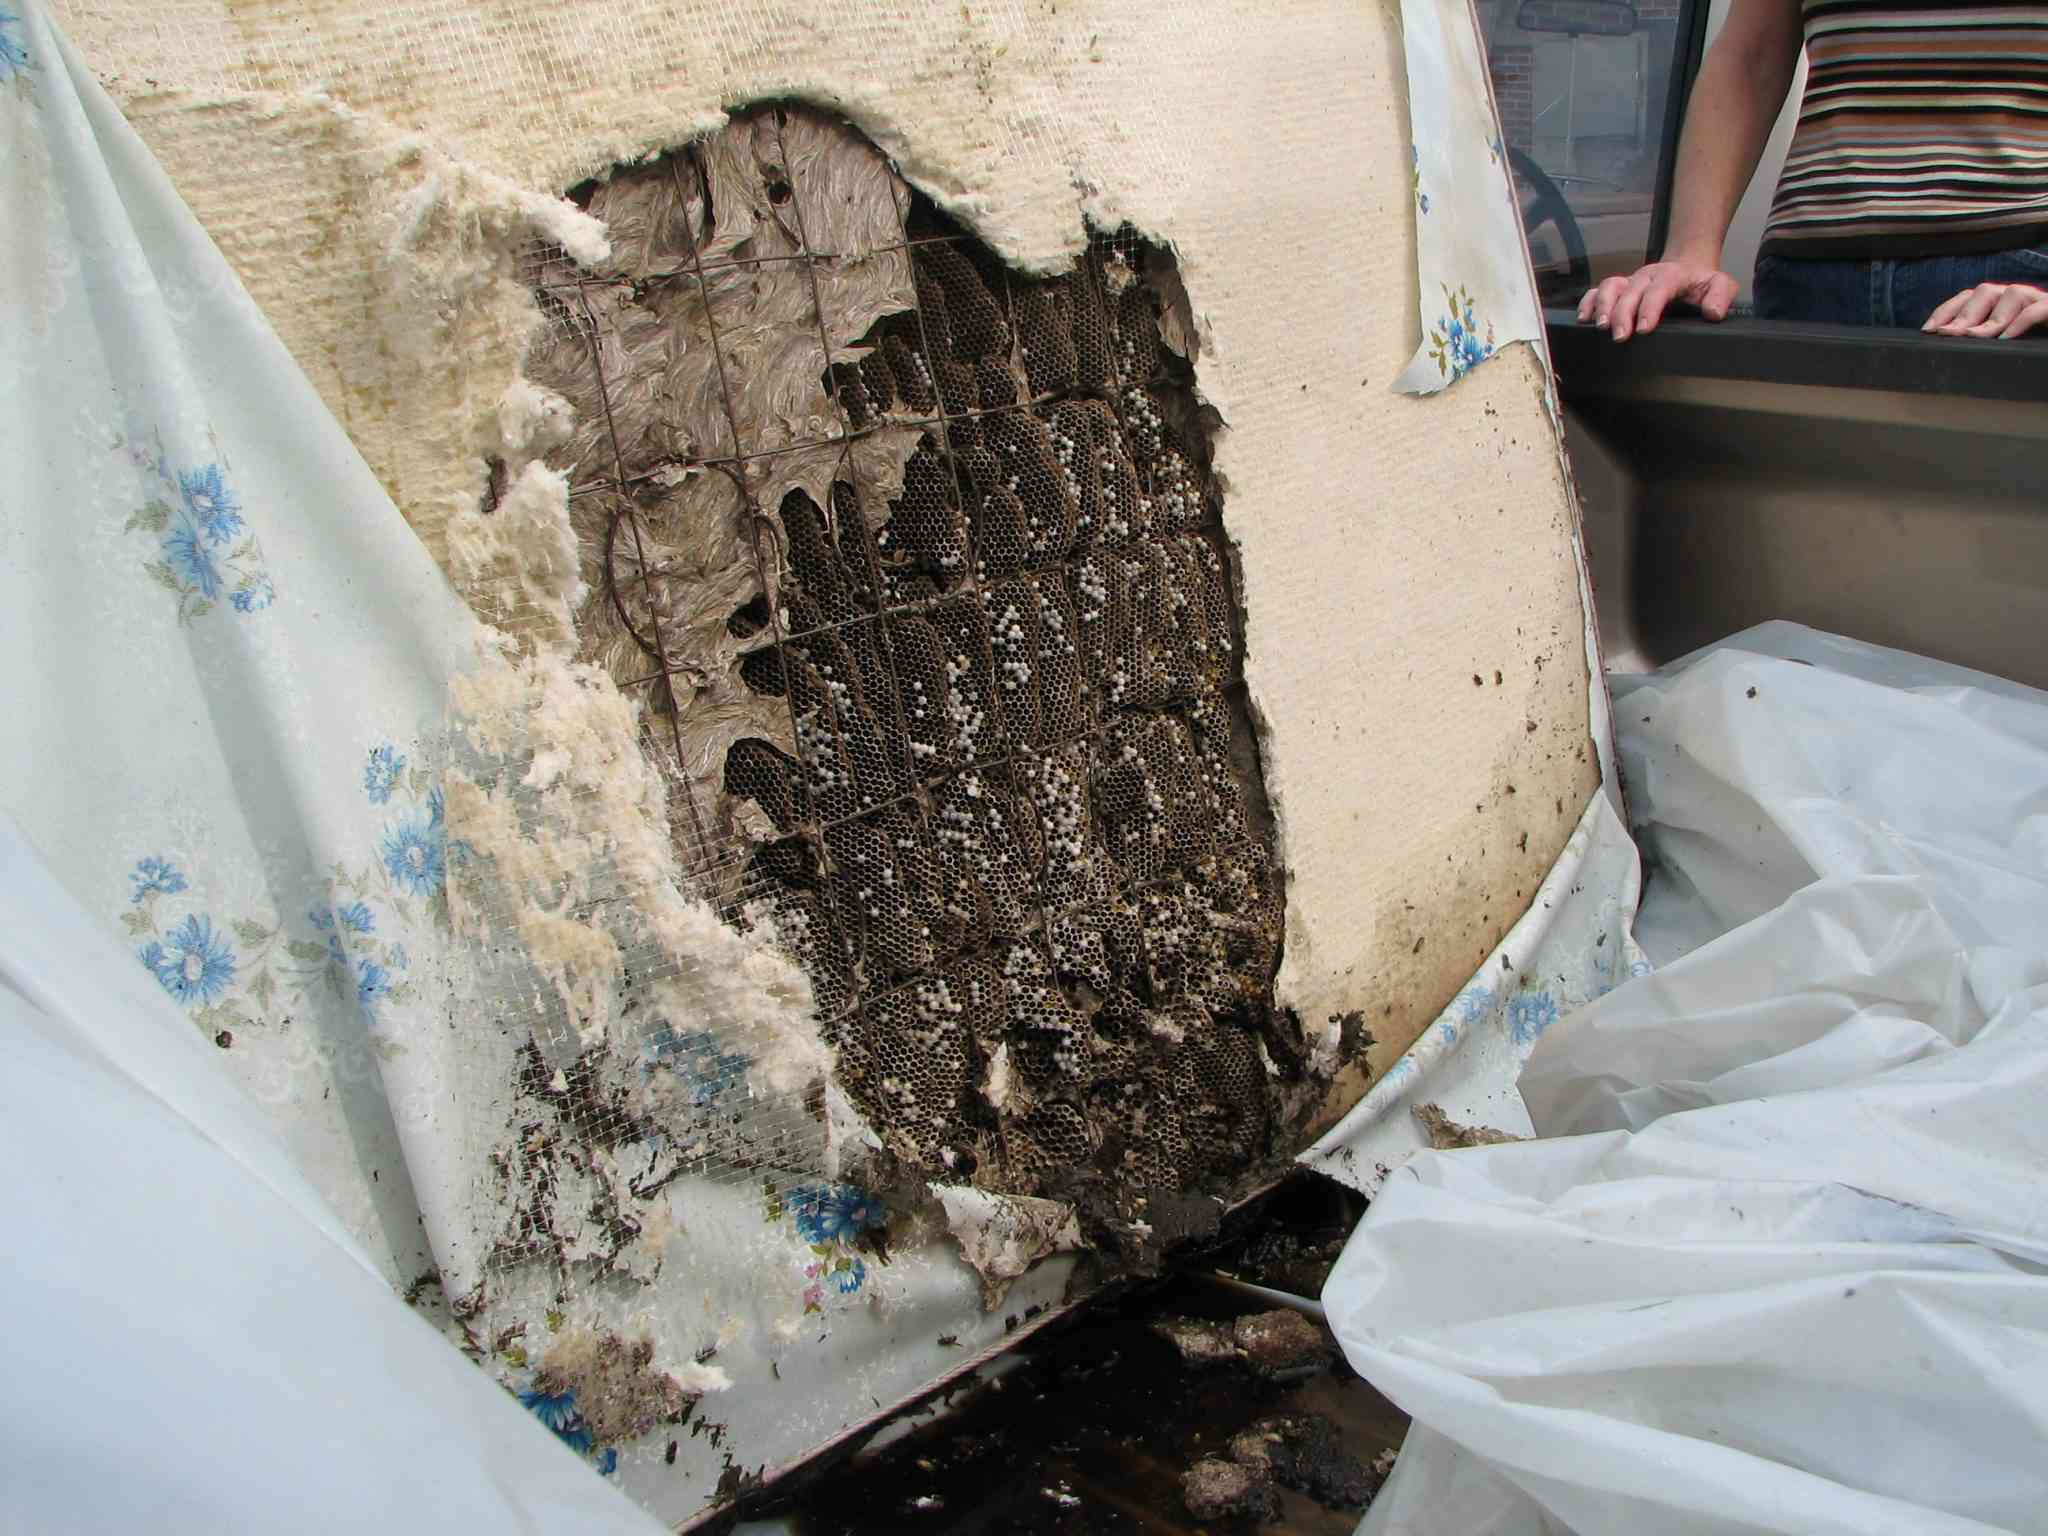 A yellow jacket nest in an discarded mattress.